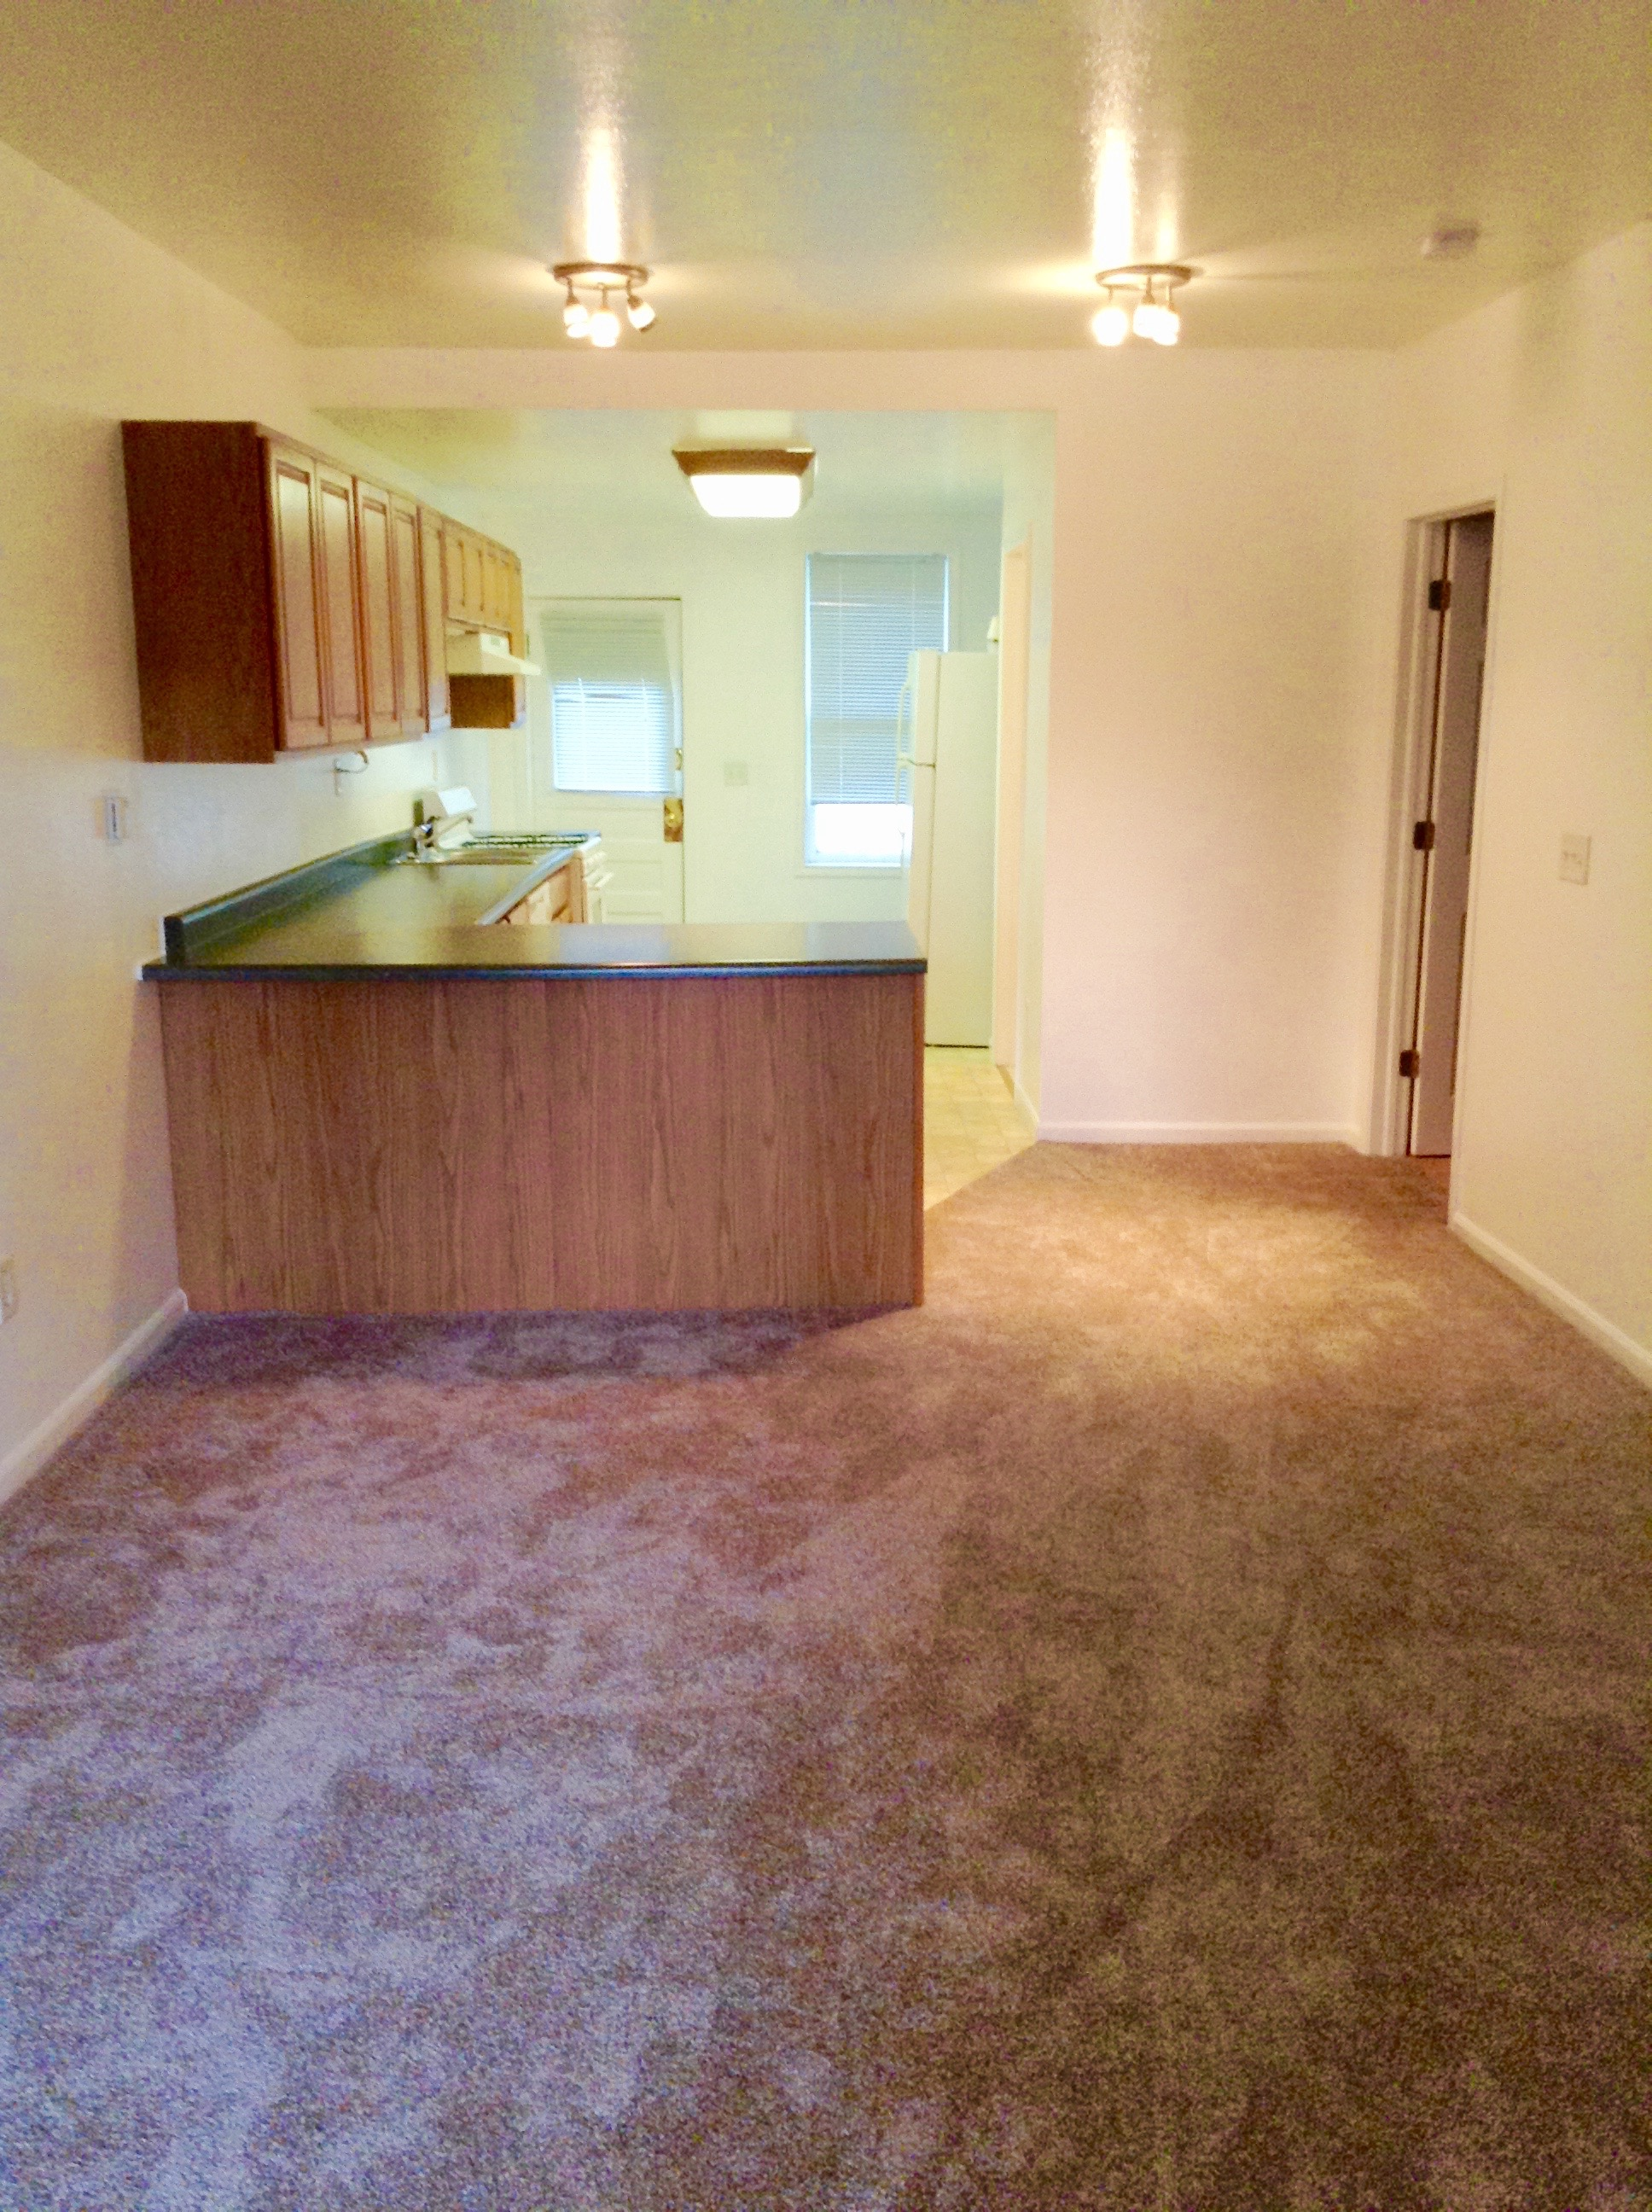 2 Bedroom 1 Bath Apartment Available Now 313 Casper Rental Central